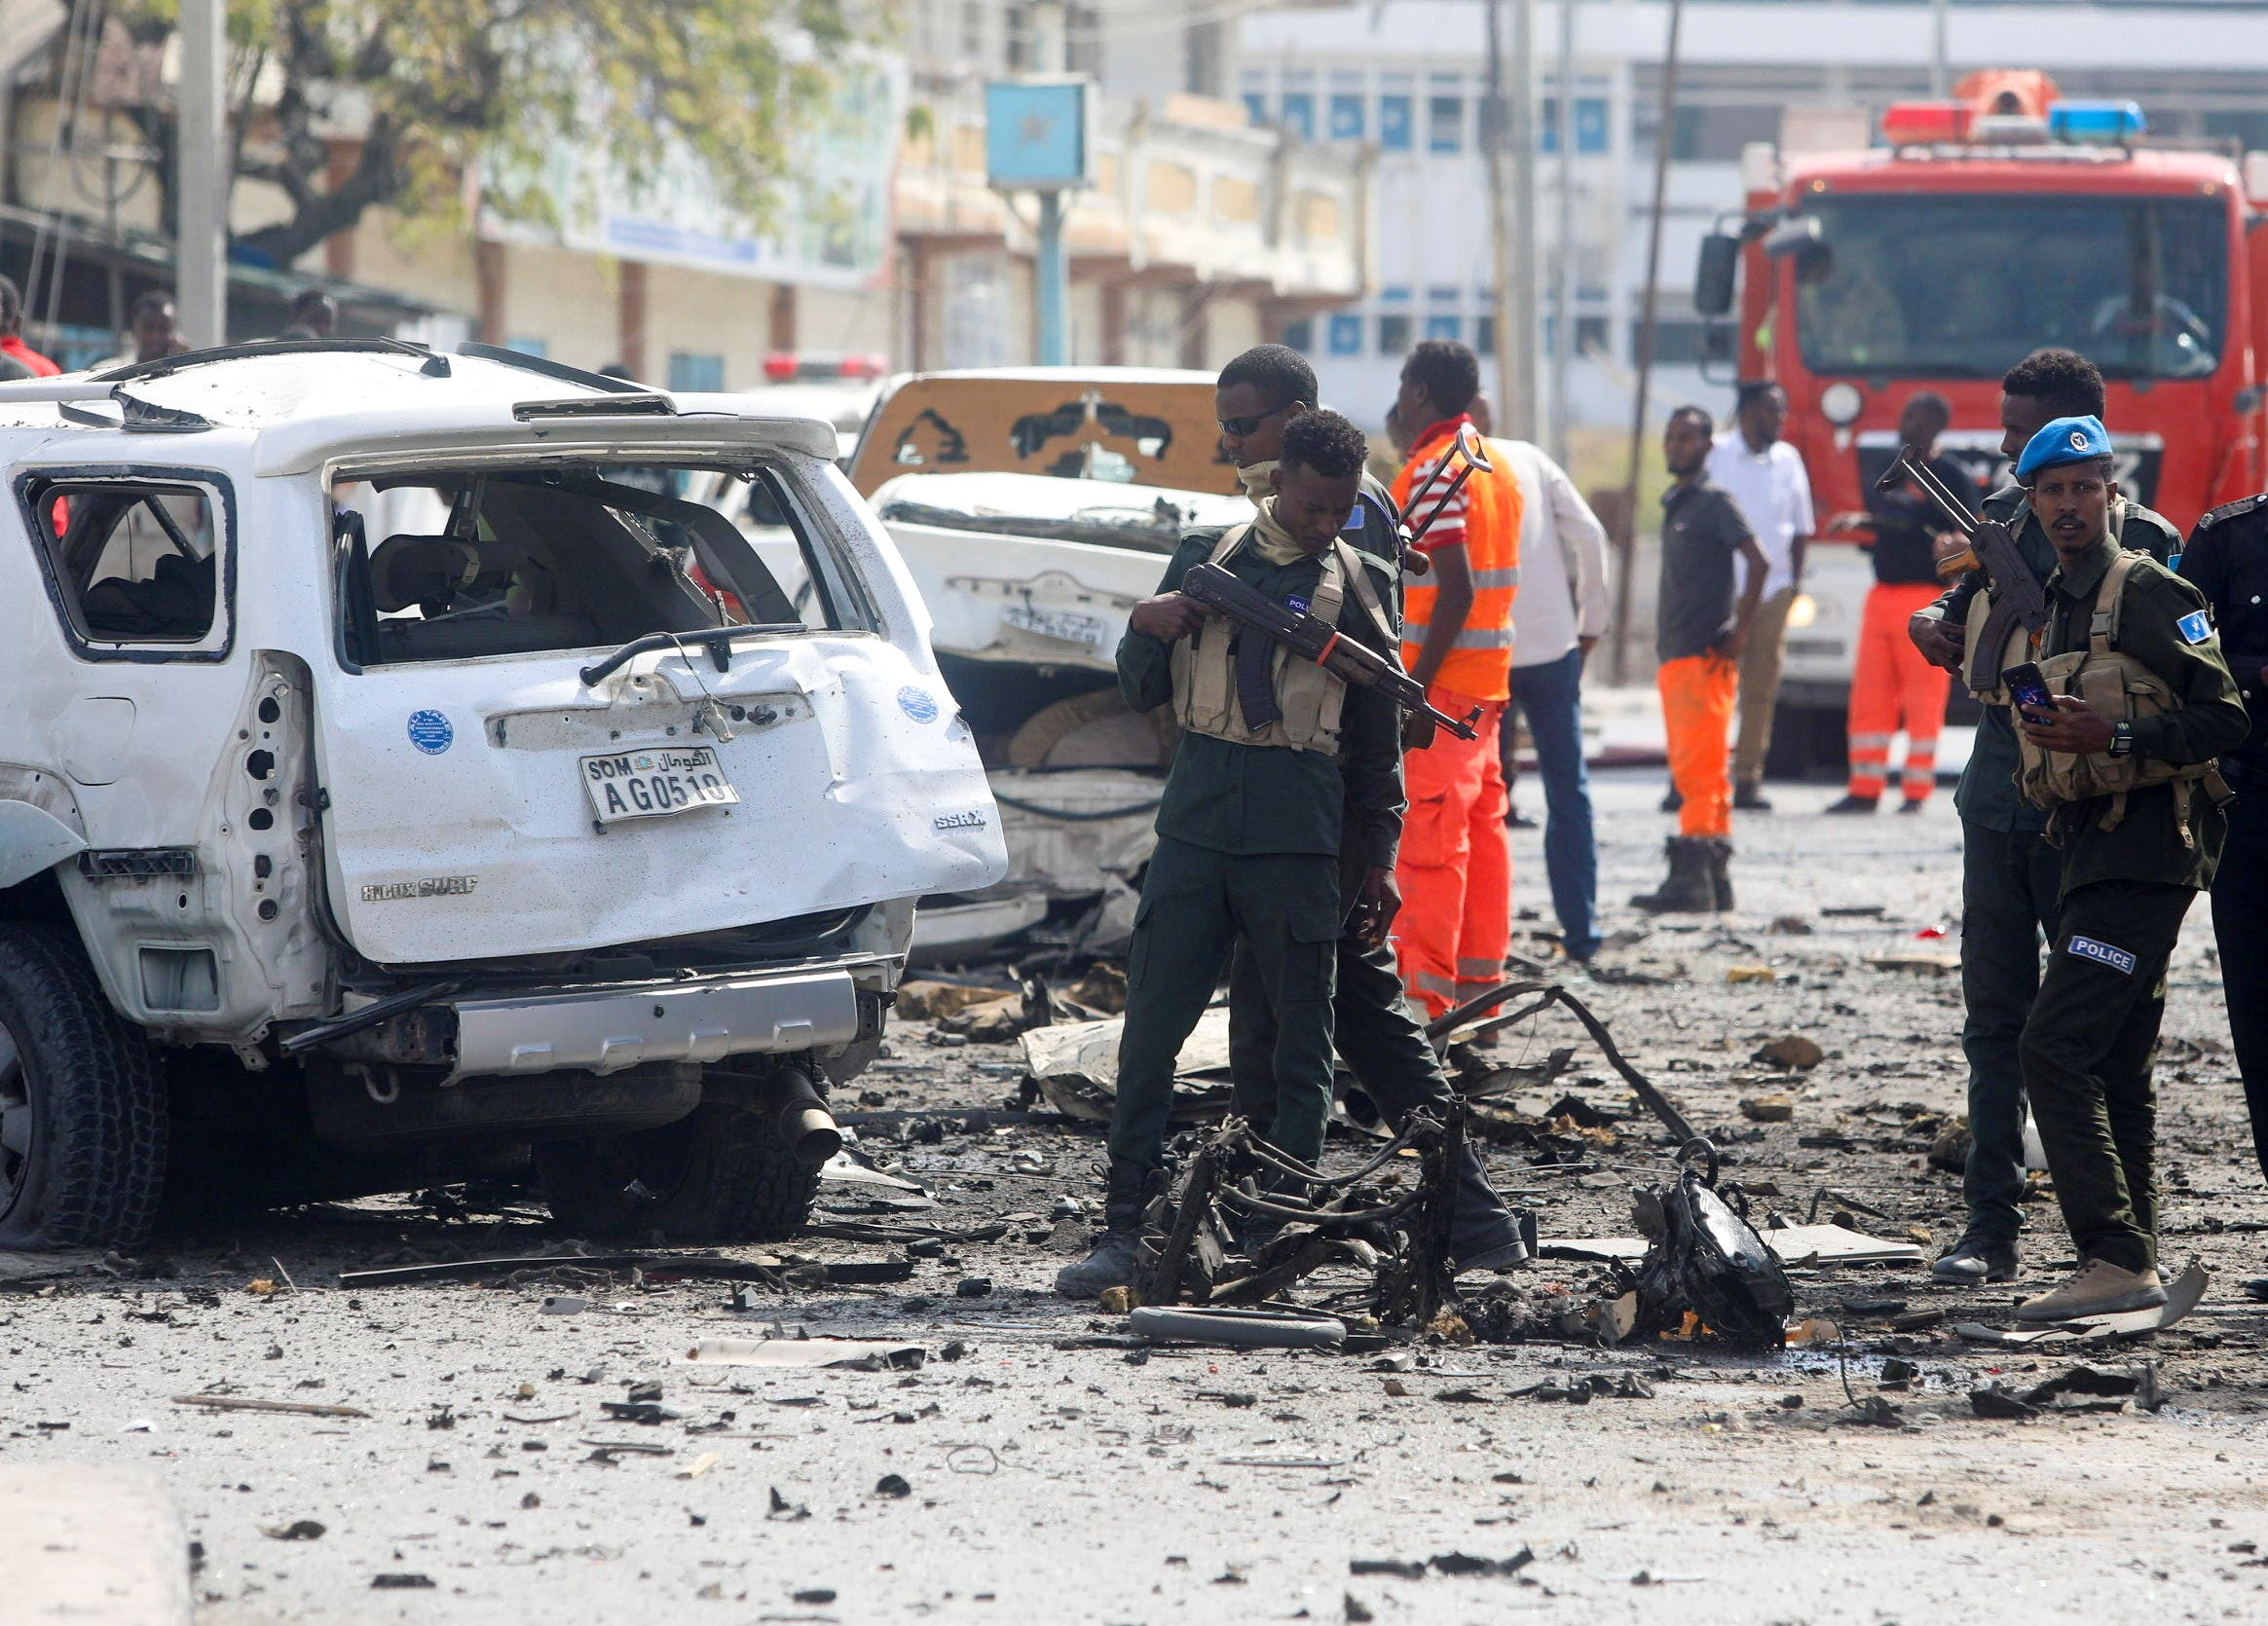 Somali security officers assess the scene of an explosion in Mogadishu, Somalia February 13, 2021. (Reuters)